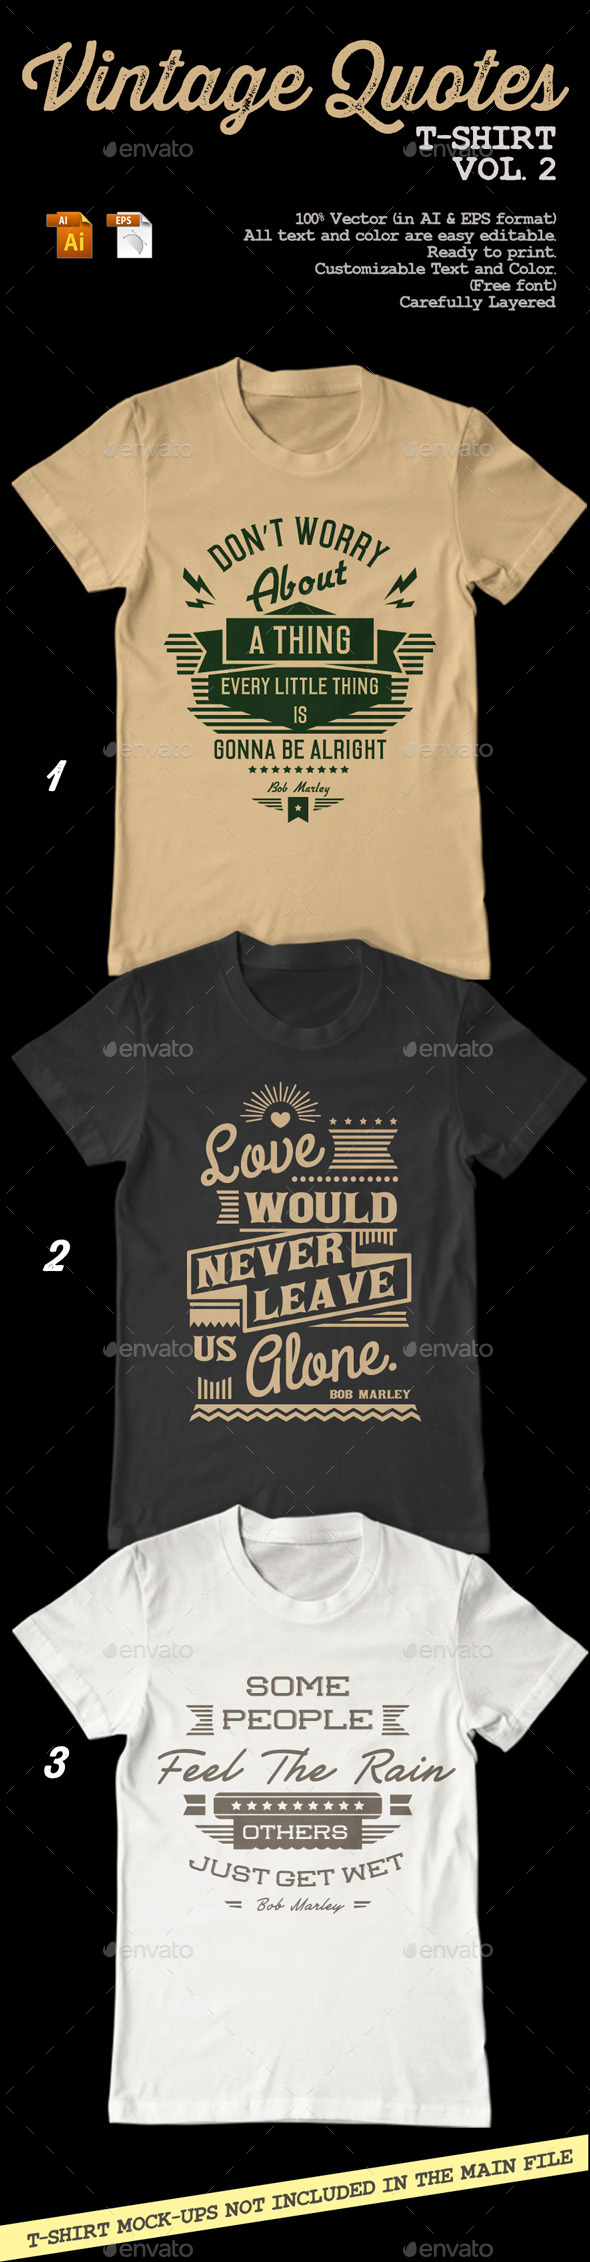 Vintage Quotes T-Shirt Vol. 2 - T-Shirts